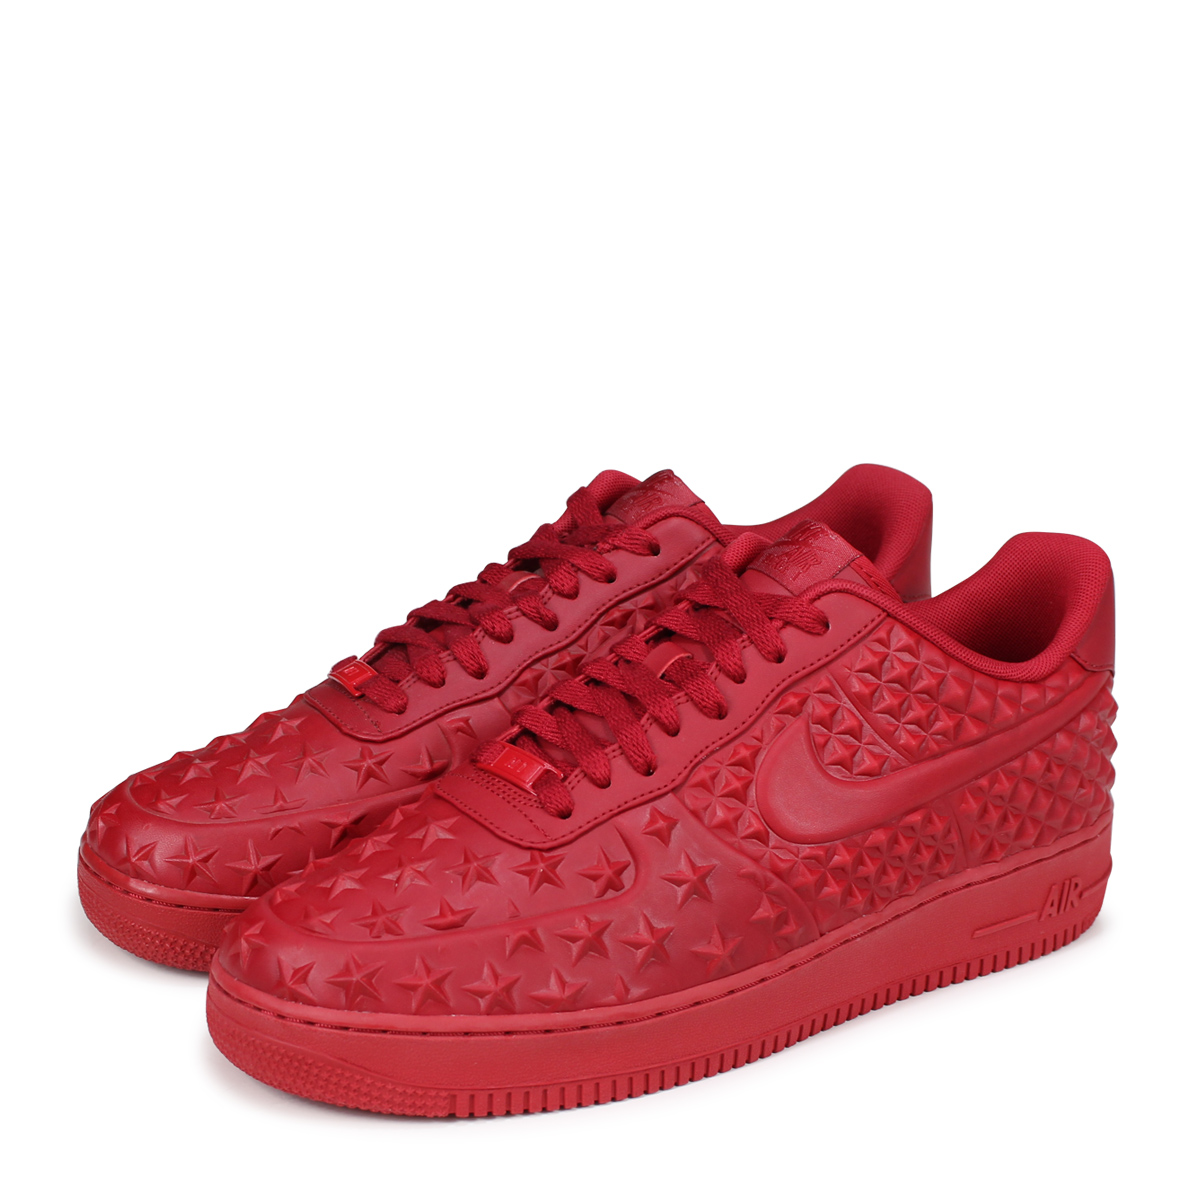 quality design 8e8b9 dfa55 NIKE AIR FORCE 1 LOW 07 LV8 INDEPENDENCE DAY Nike air force 1 sneakers men  789,104-600 red  load planned Shinnyu load in reservation product 6 29 ...